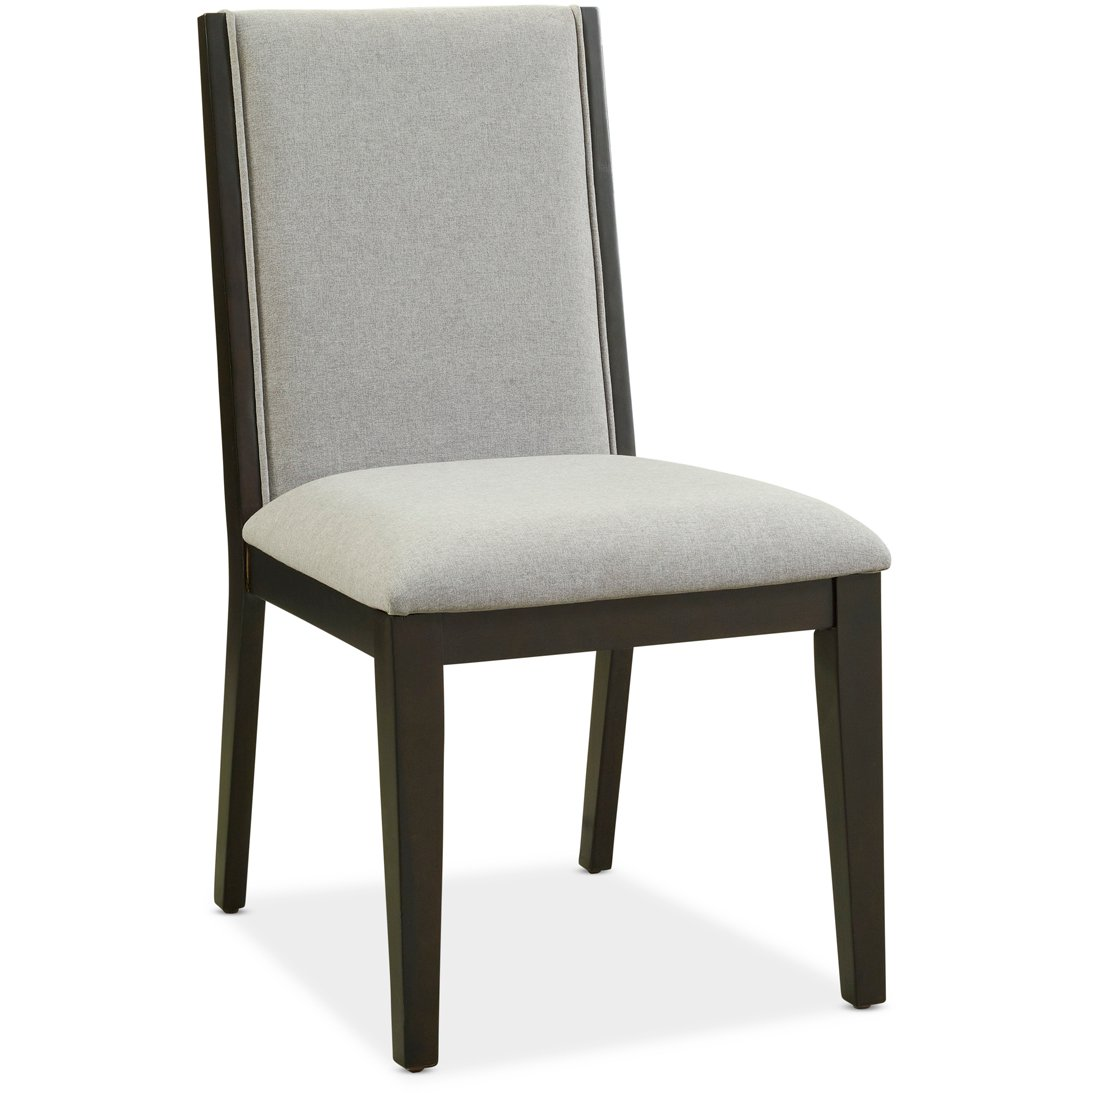 Furniture Clearance Sacramento: Gray Upholstered Dining Room Chair - Crosby Street